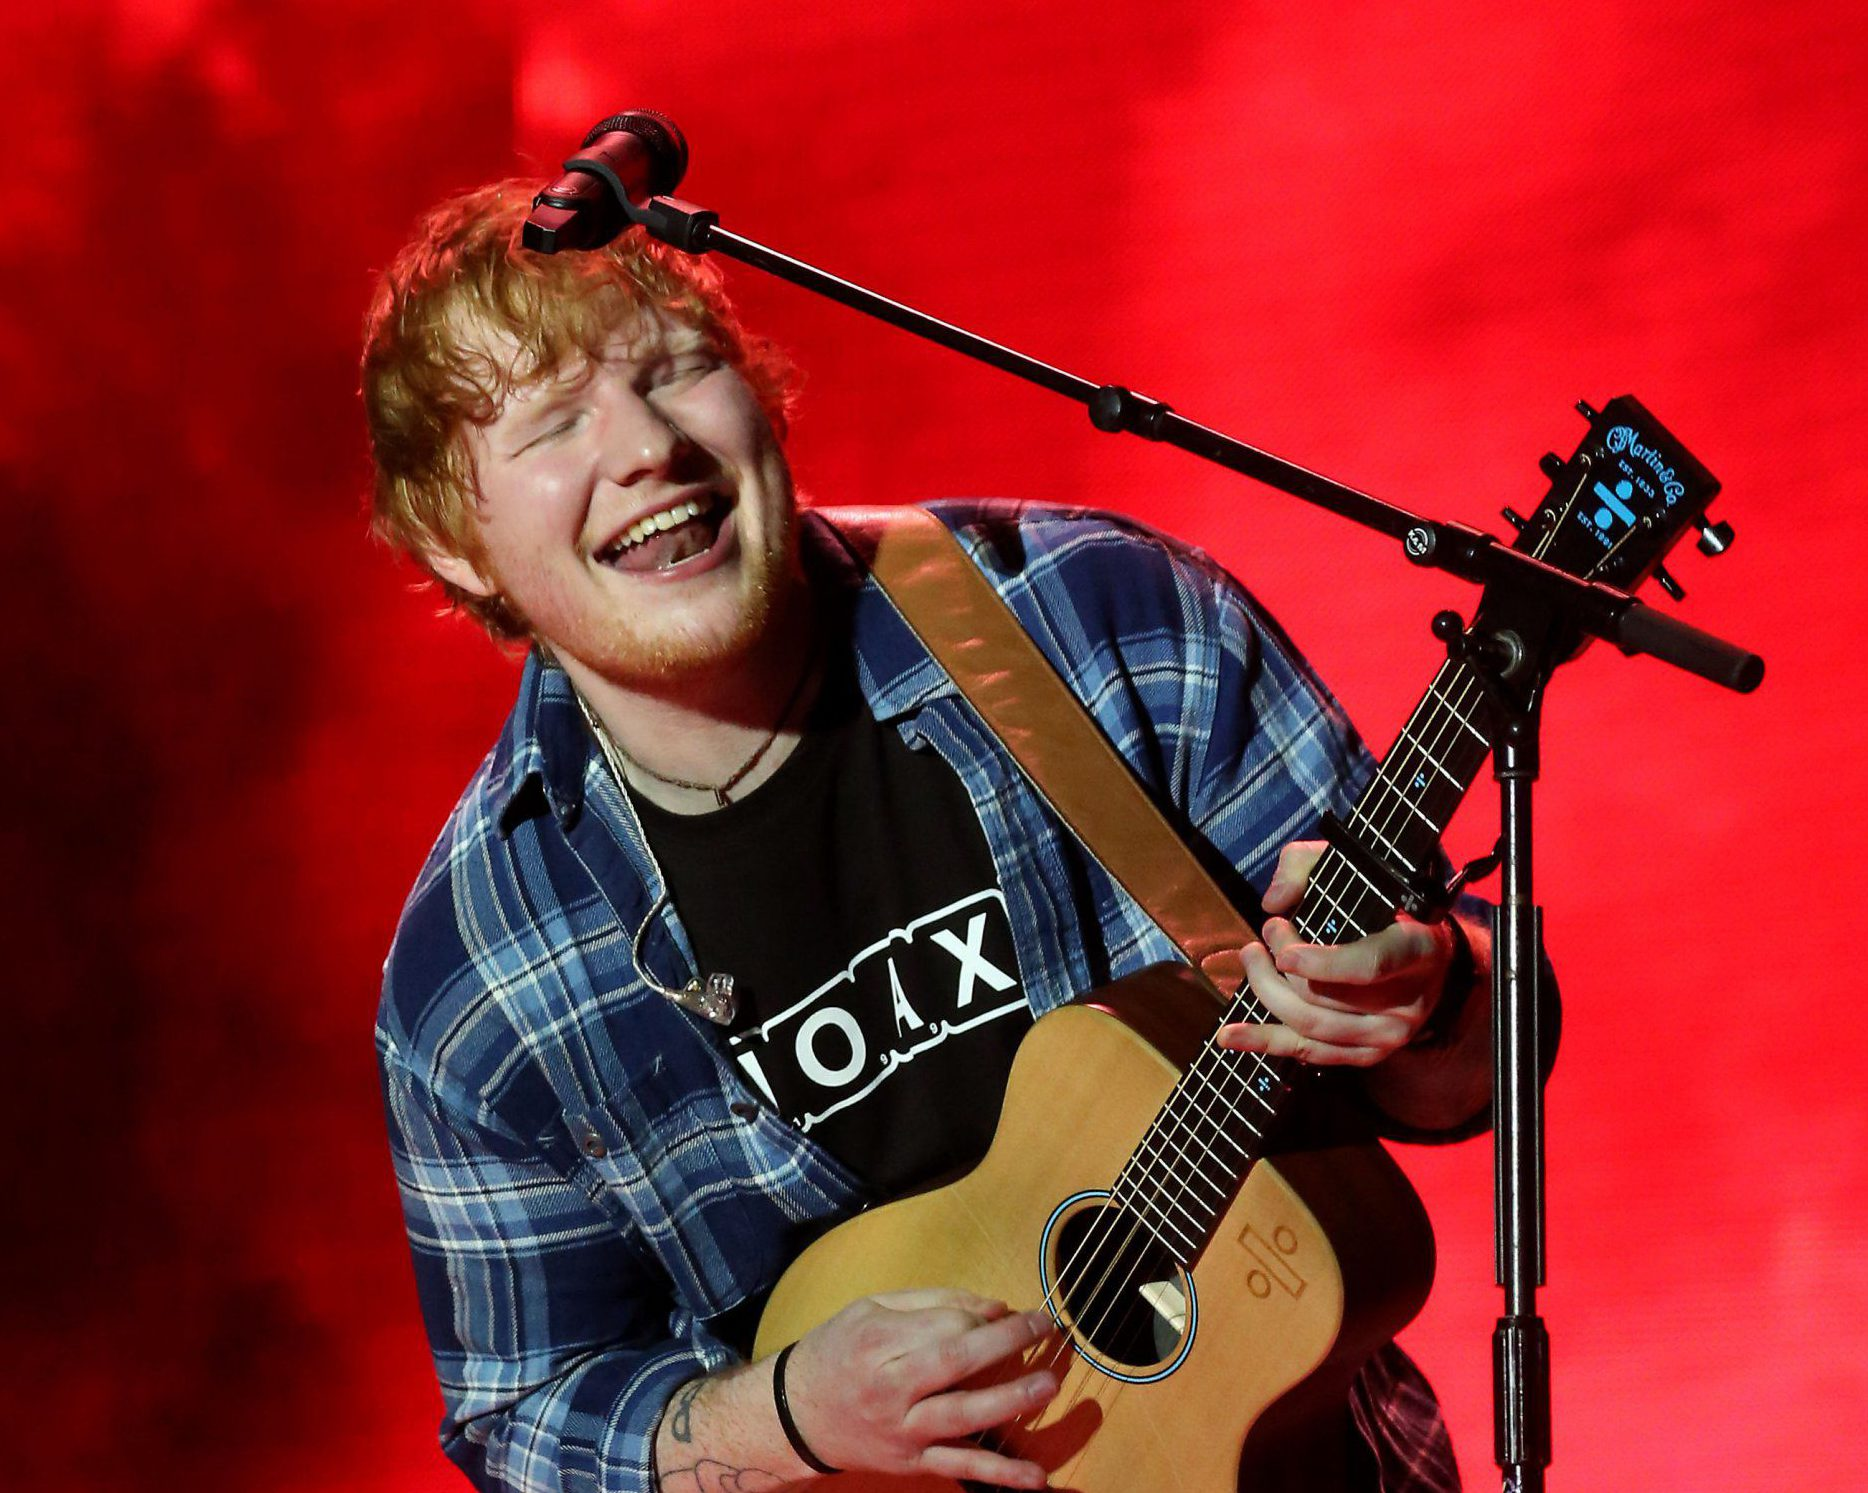 Ed Sheeran set to perform intimate London gig